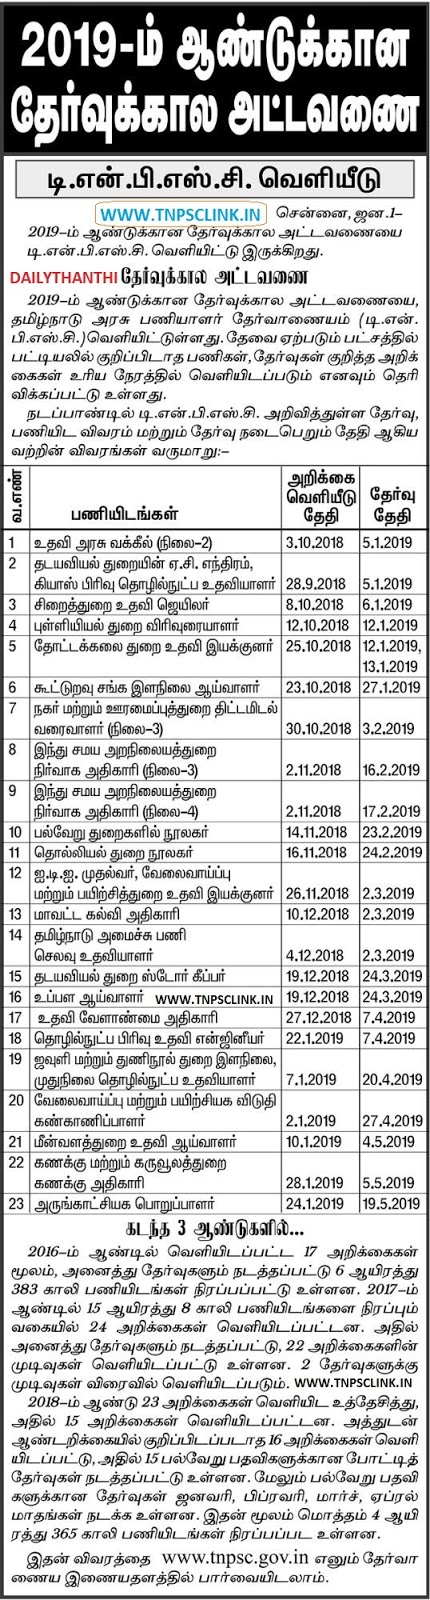 TNPSC Annual Recruitment Planner 2019 TNPSC Exams List